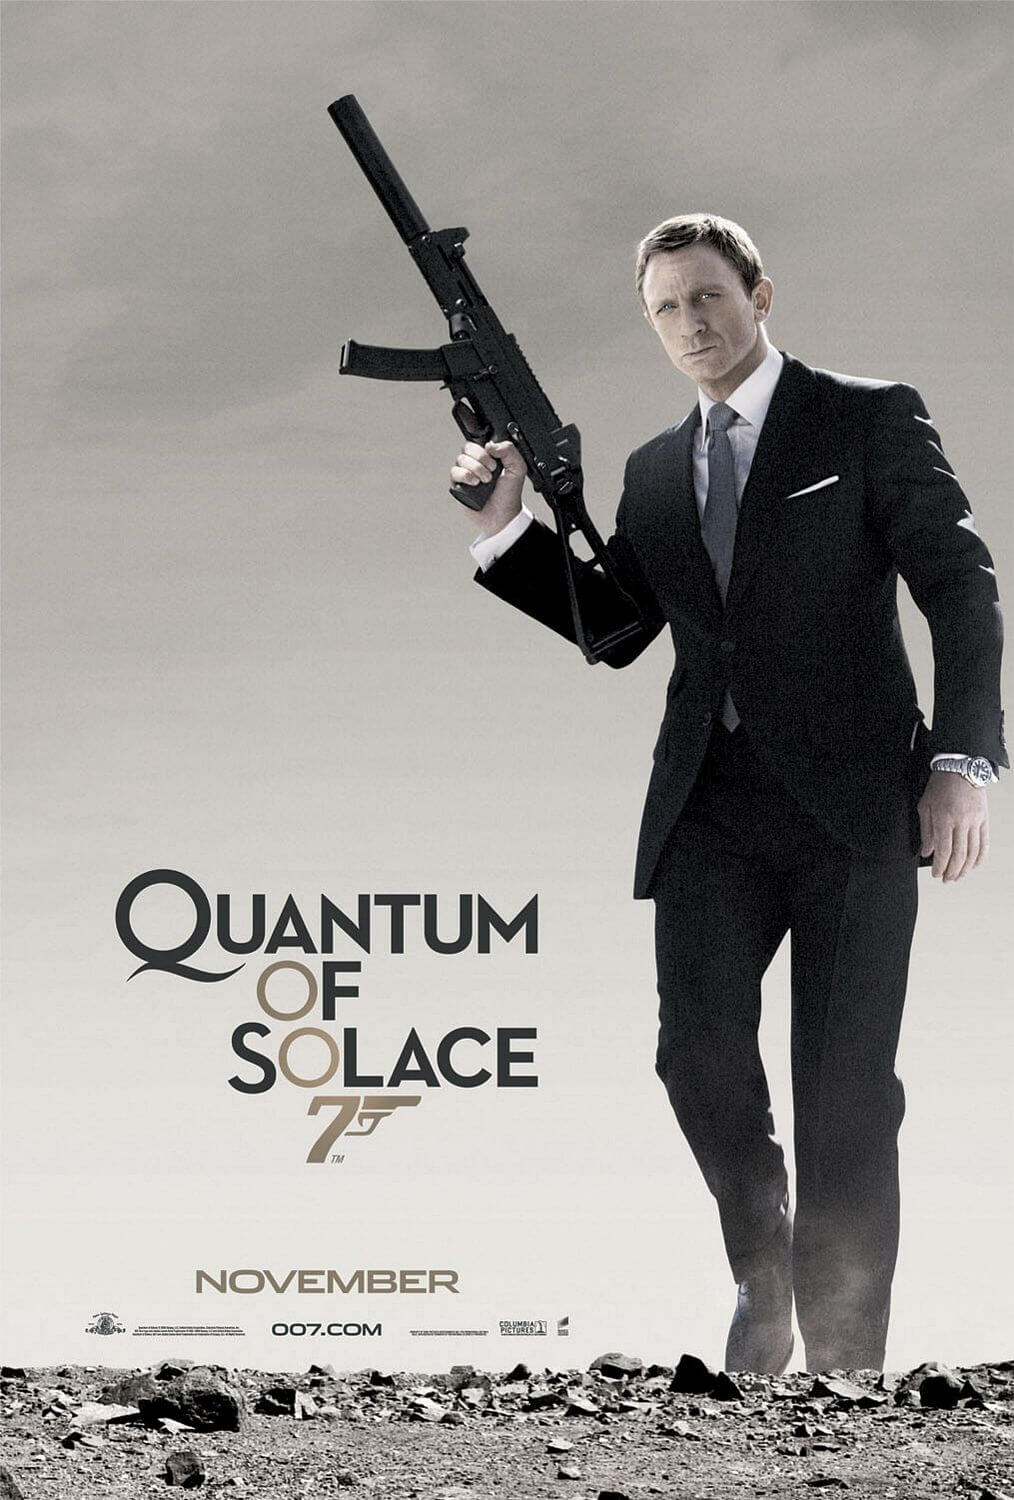 Quantum of Solace (Marc Forster, 2008)